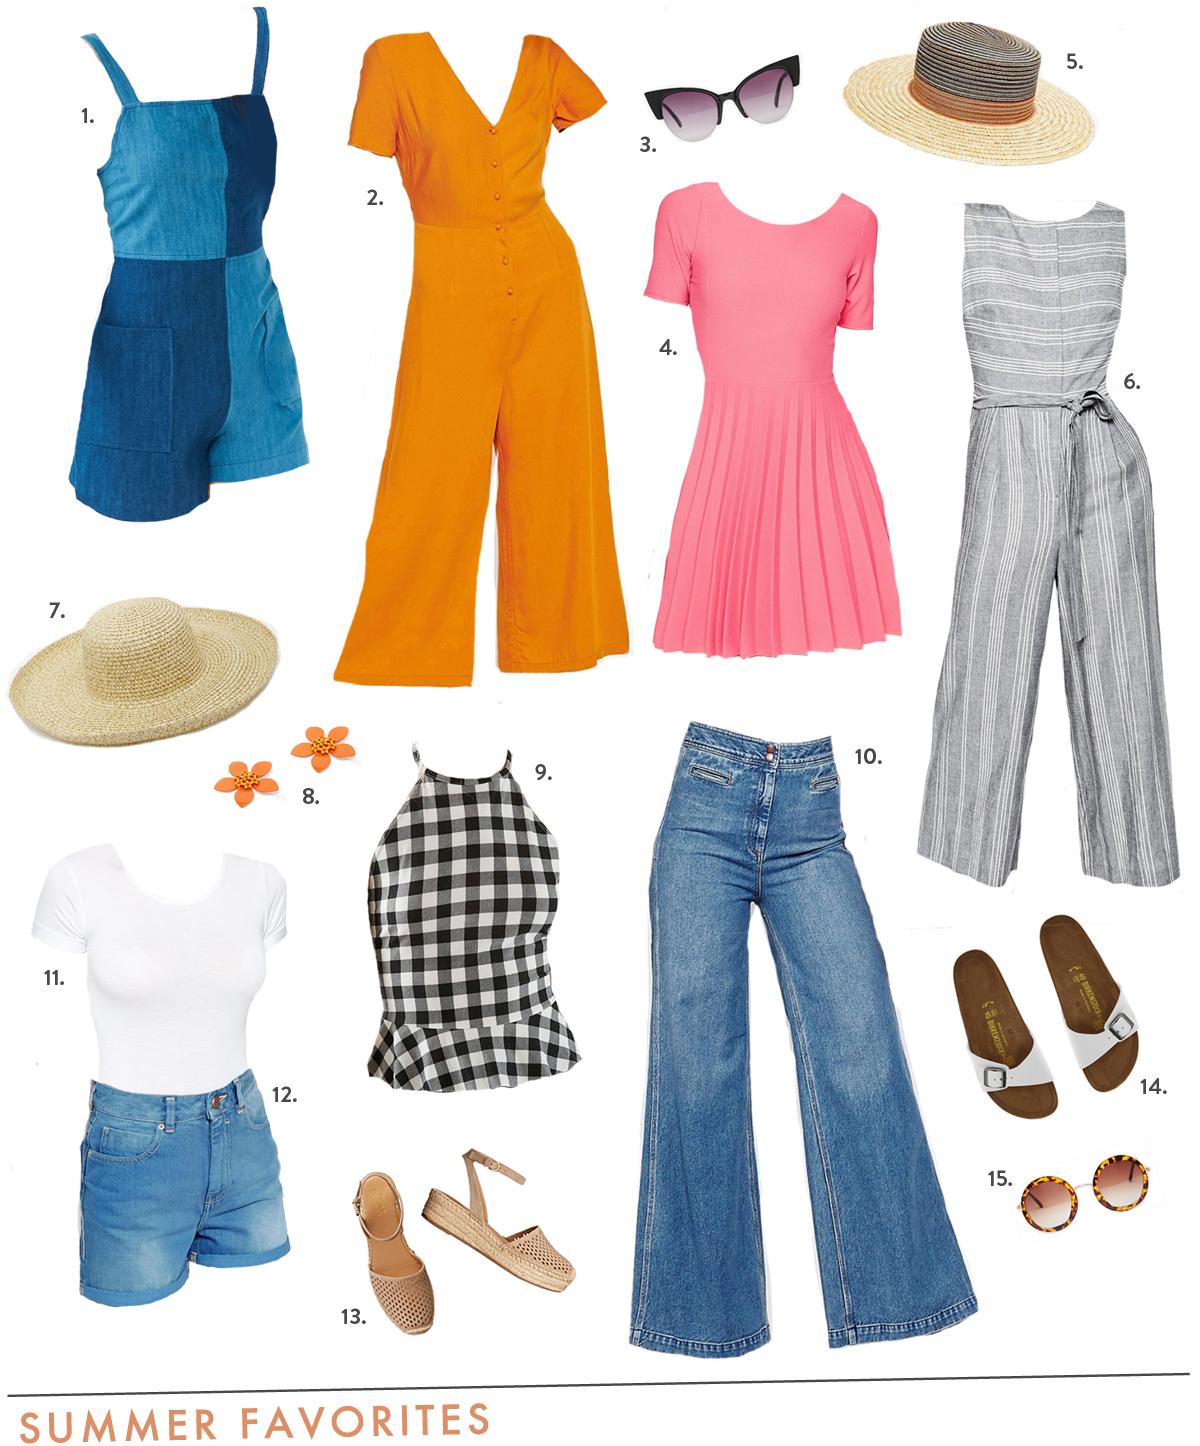 vintage inspired summer clothes